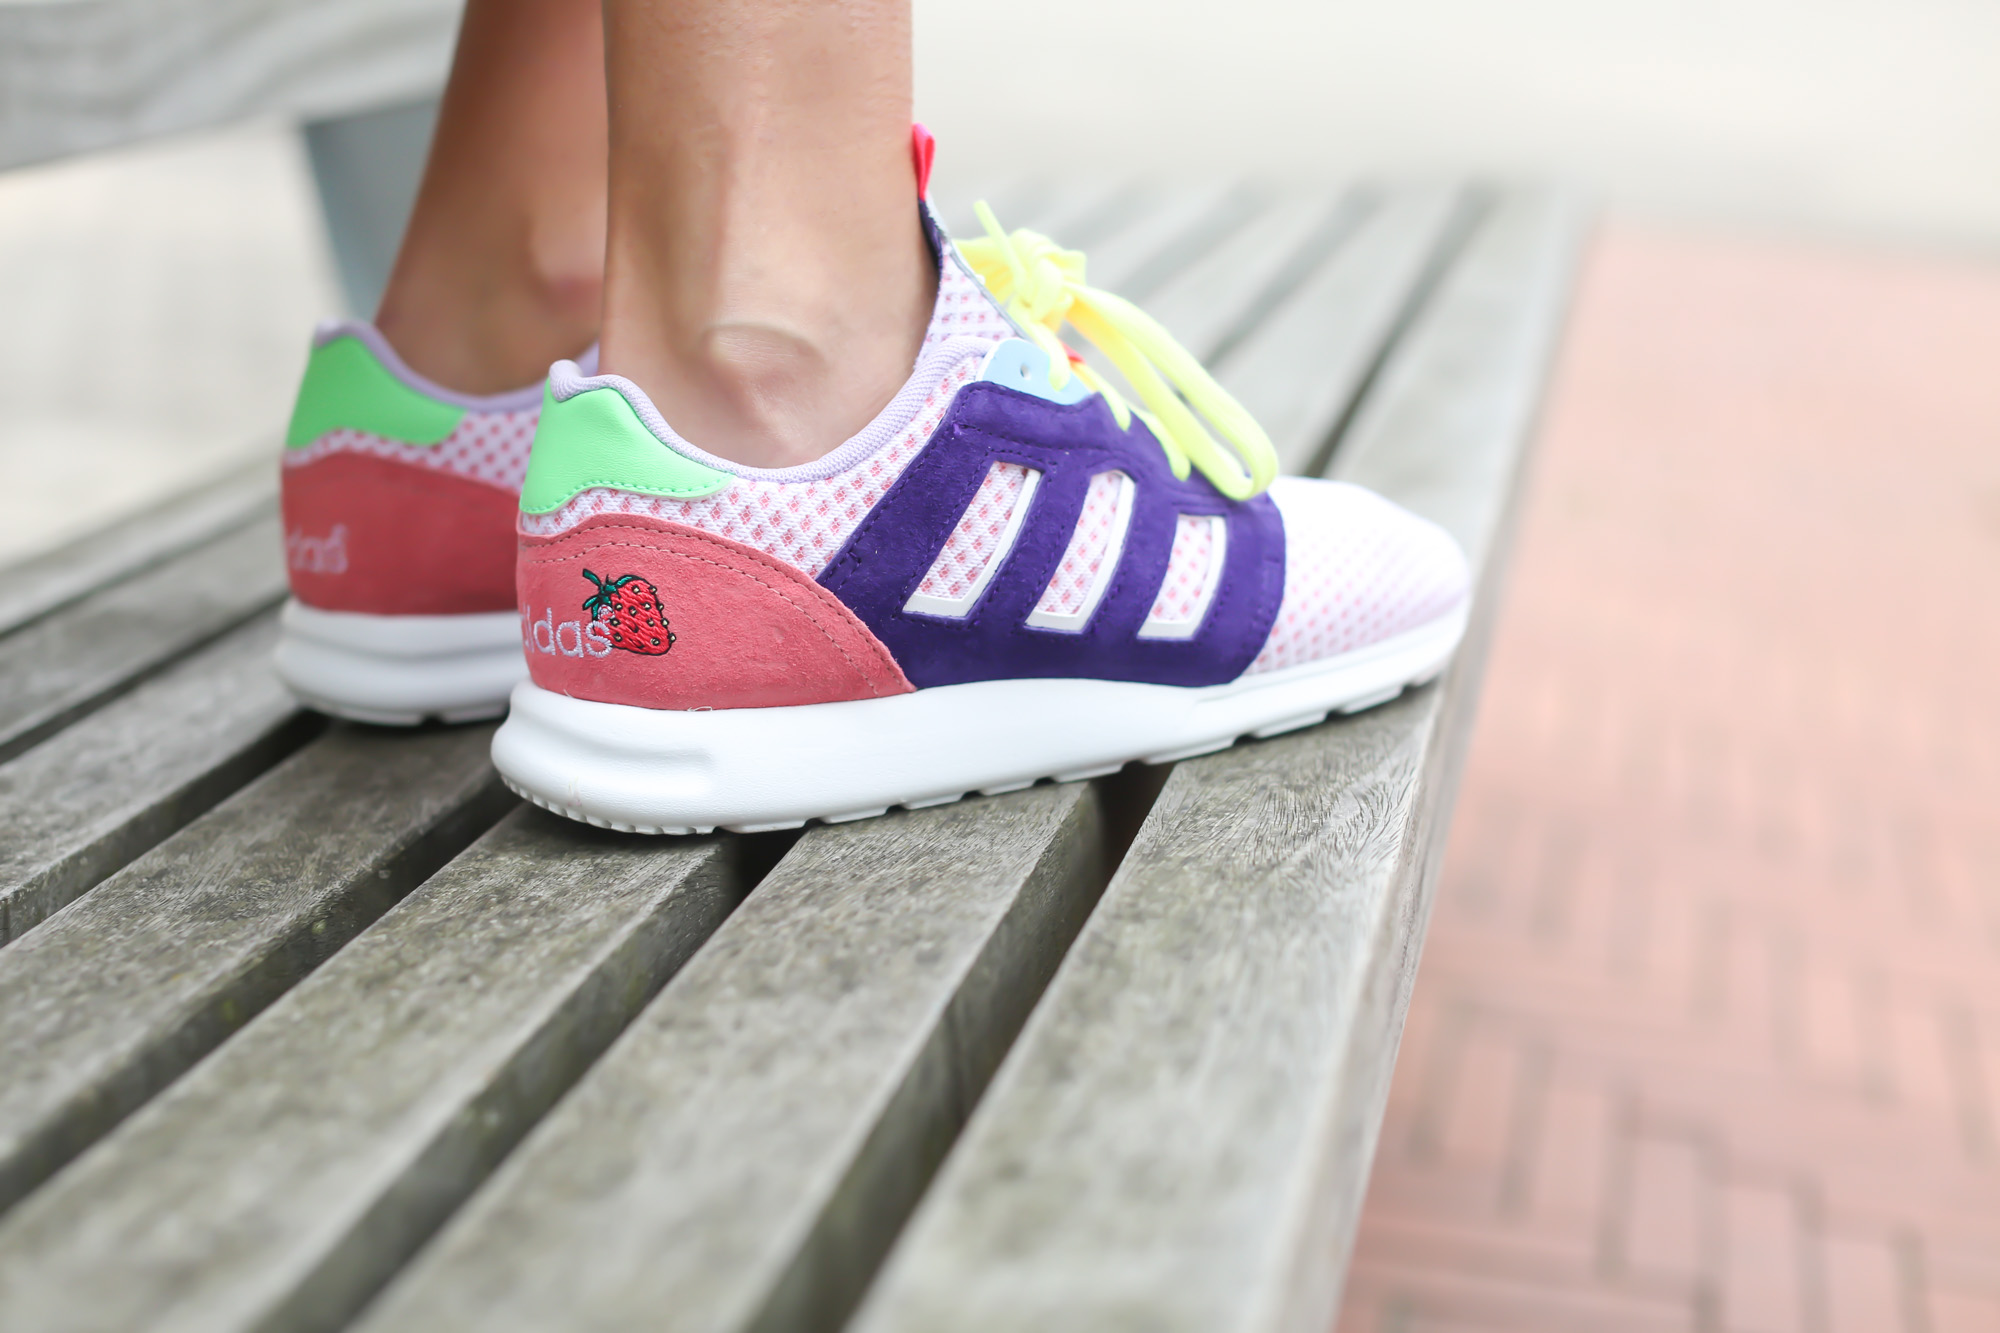 Clochet-streetstyle-strawberry-daiquiri-adidas-ZX-500-2.0-W-Cocktail-Sneaker-Boutique-Pack-leztin-street-3